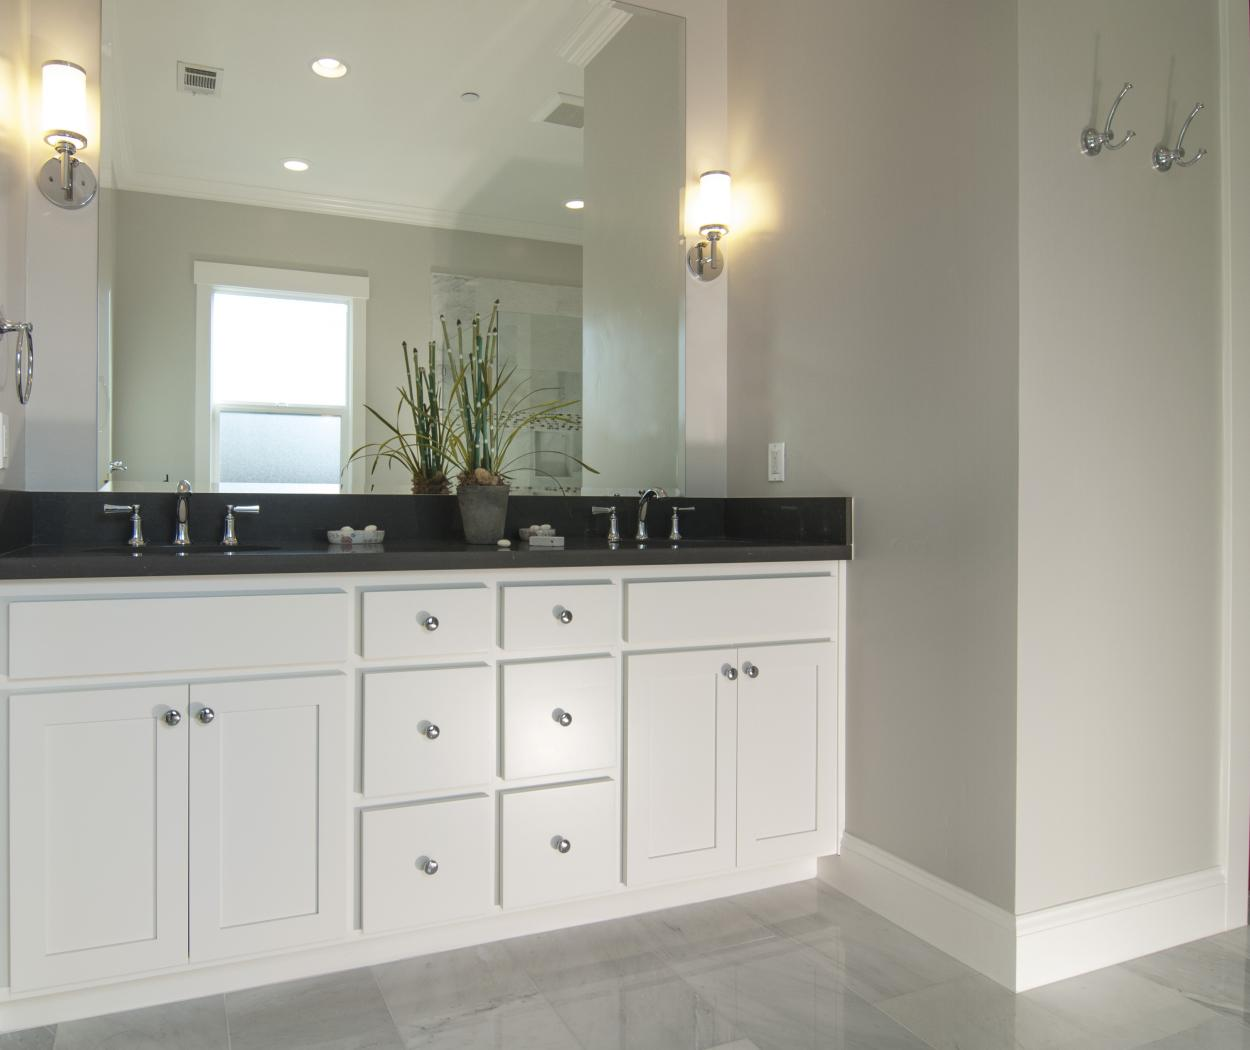 White Transitional Master Bathroom, Shaker Style with Double Sinks, Silver Faucet and Knobs